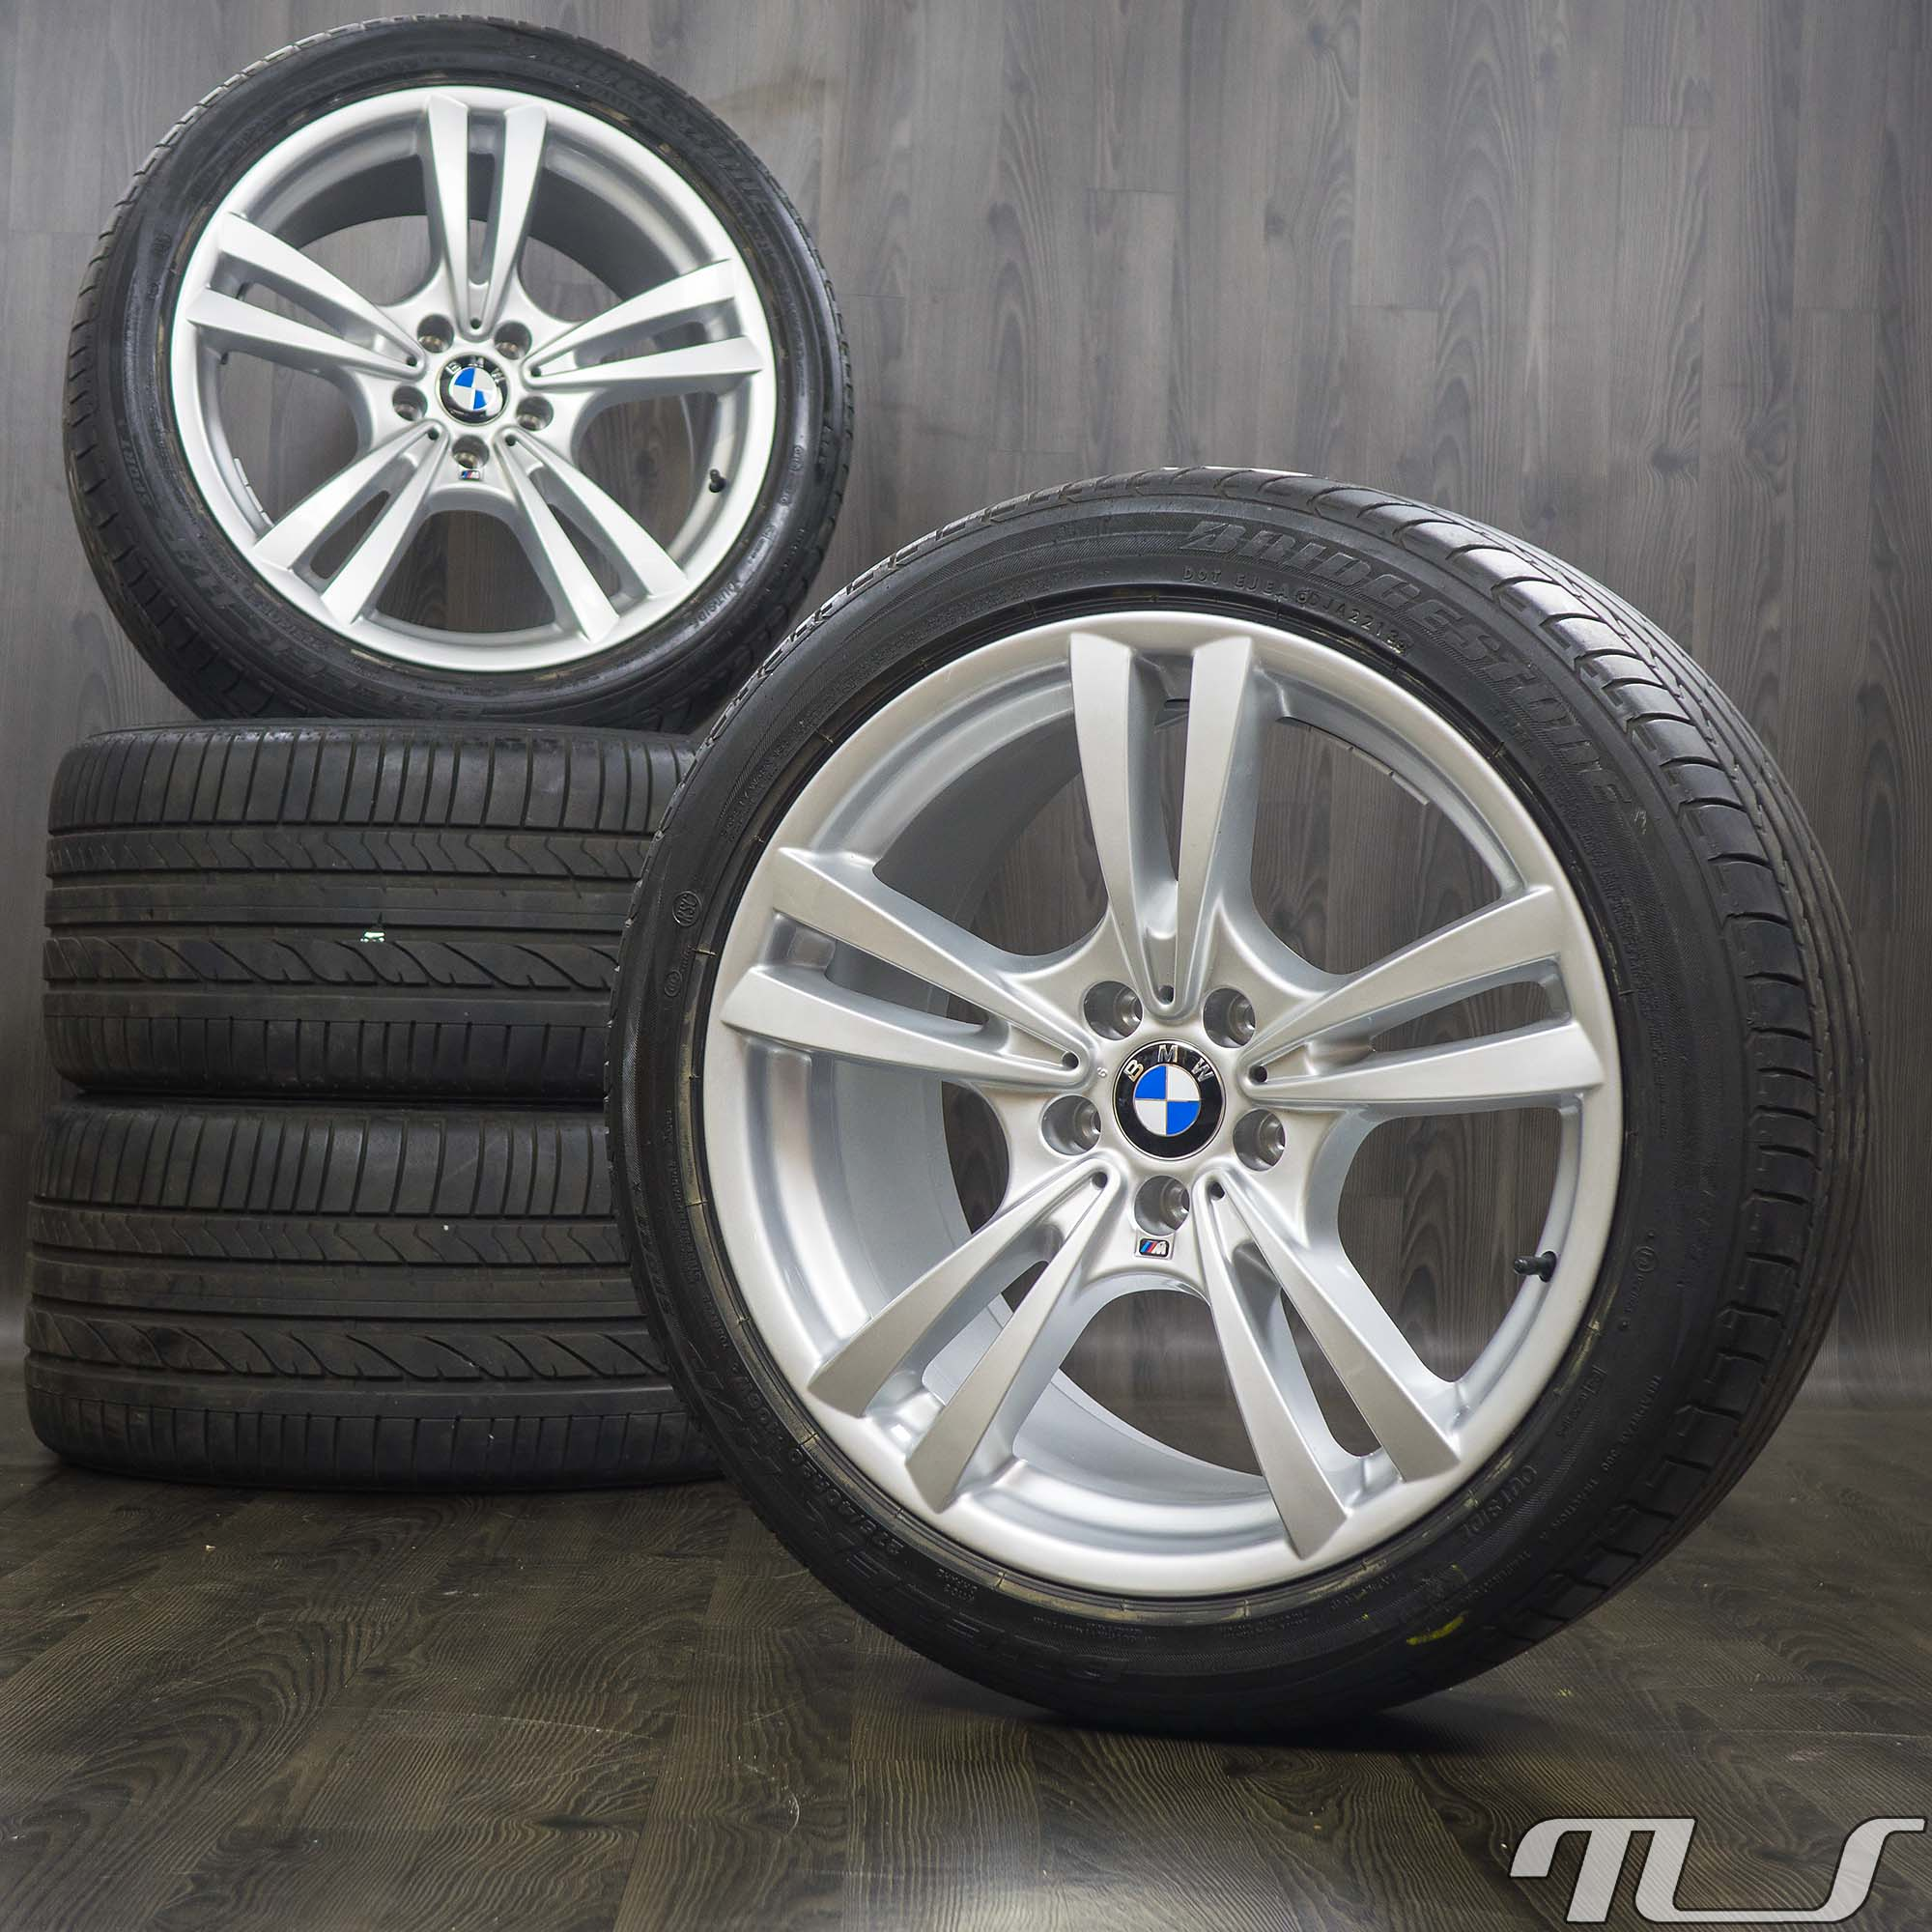 20 Inch Alloy Wheels Bmw X5 E70 X6 E71 Rims Styling M299